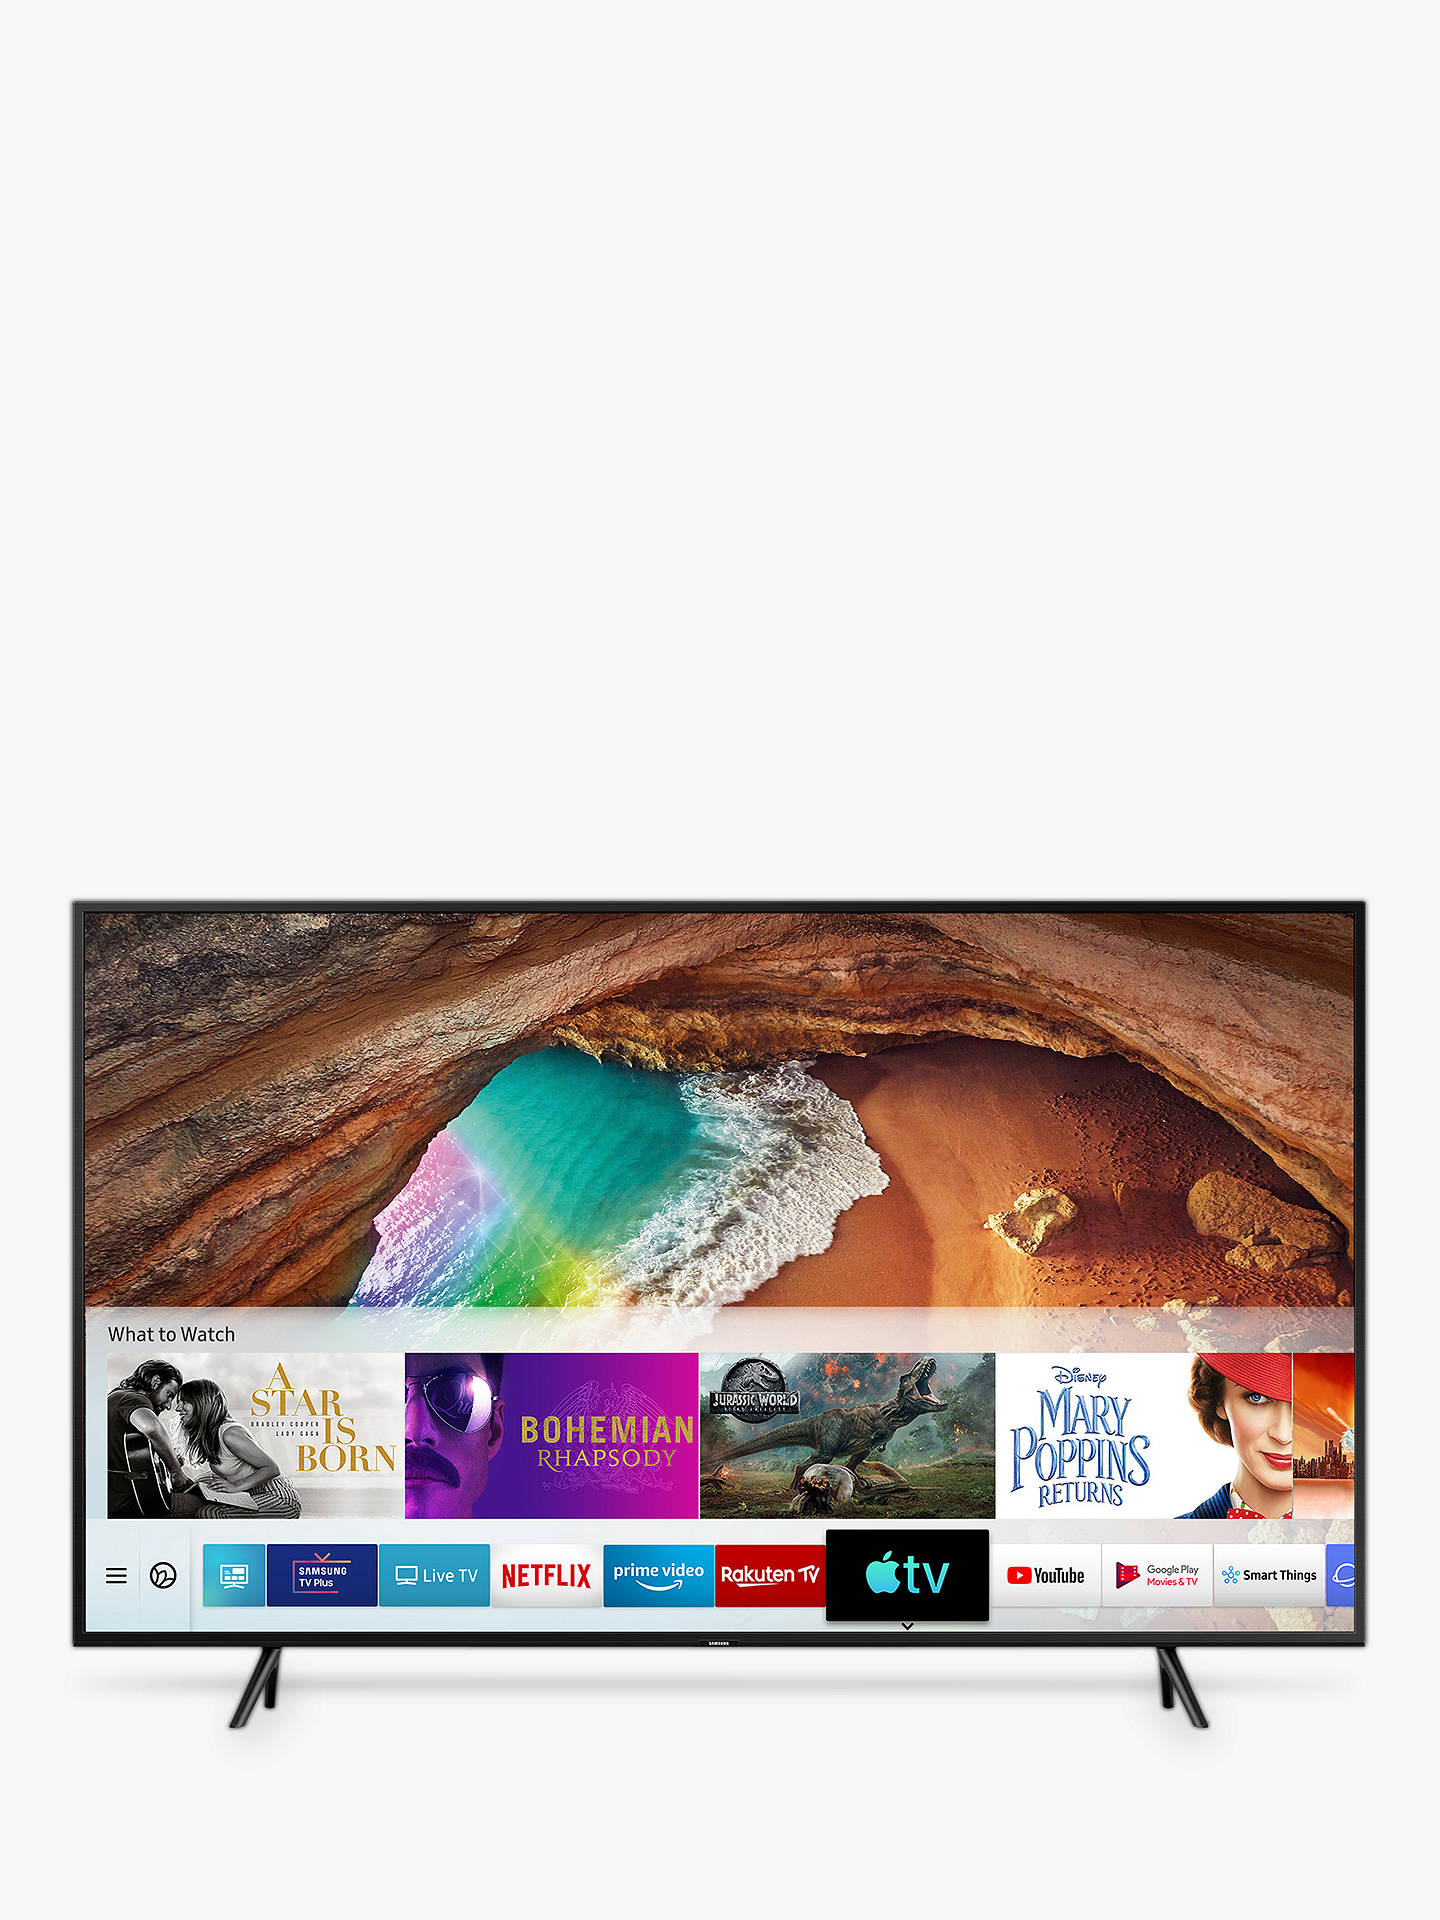 Samsung QE82Q60R (2019) QLED HDR 4K Ultra HD Smart TV, 82